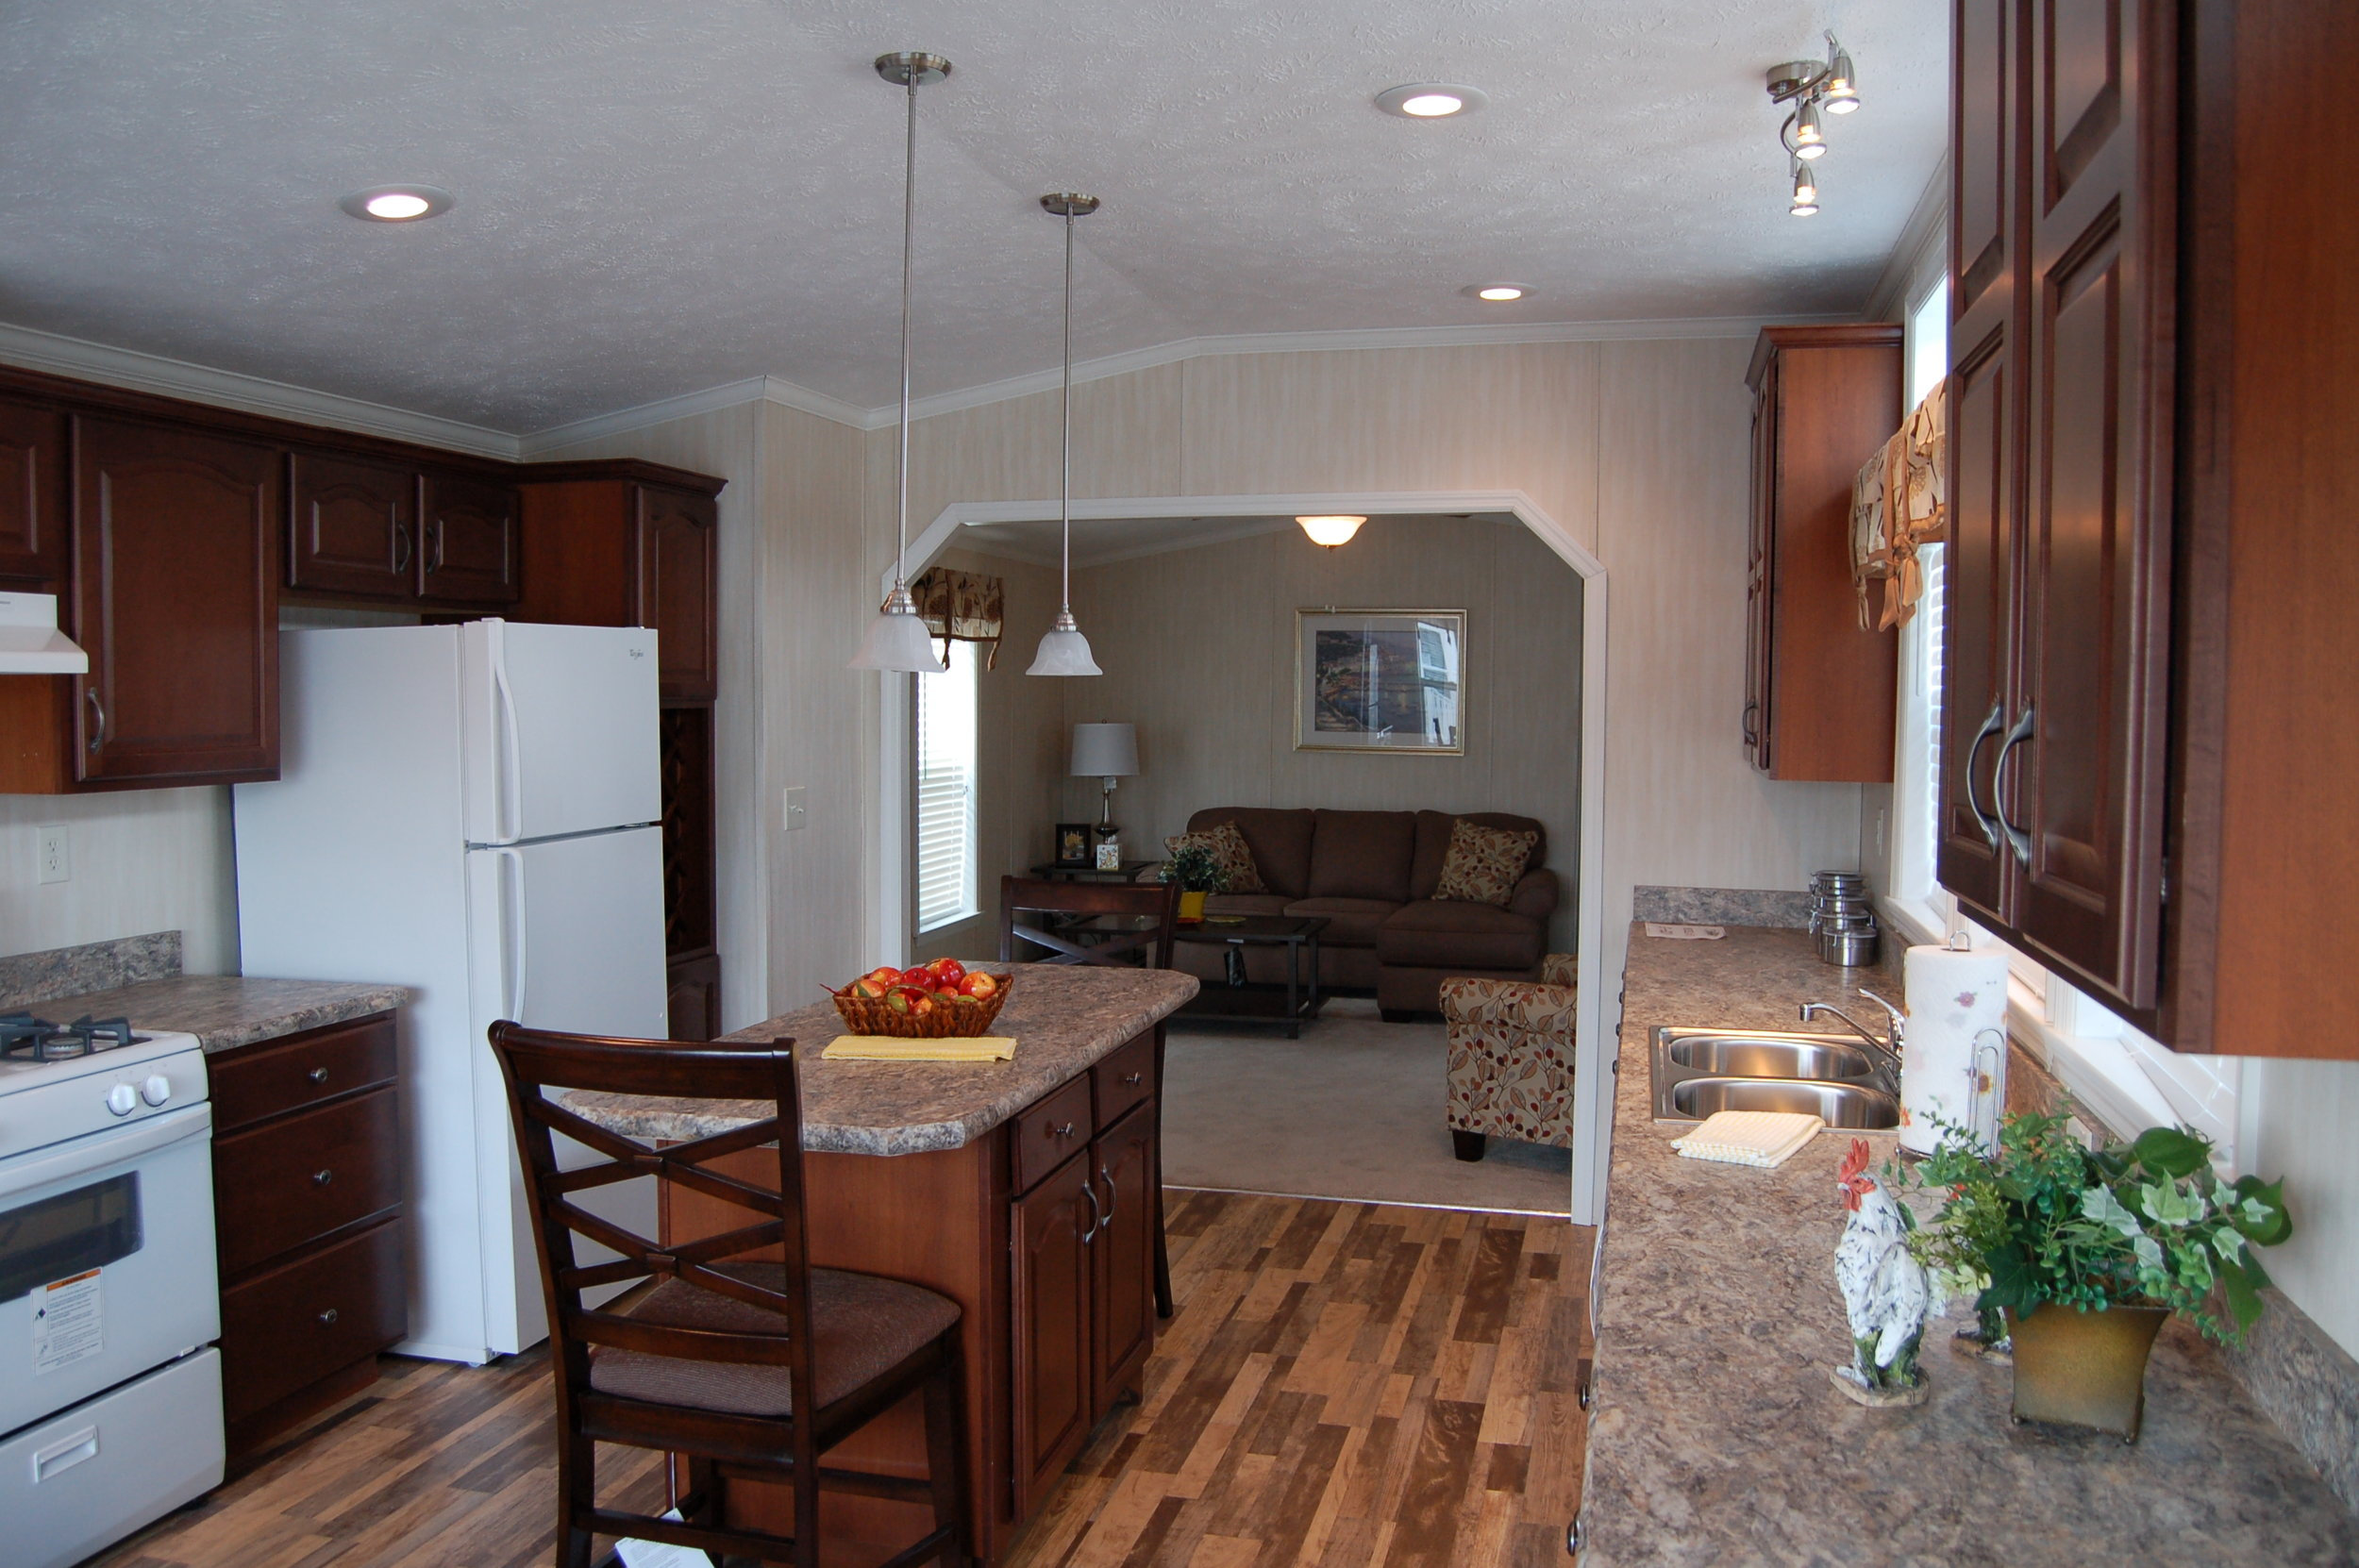 G-620 Kitchen-Living Room 2.JPG